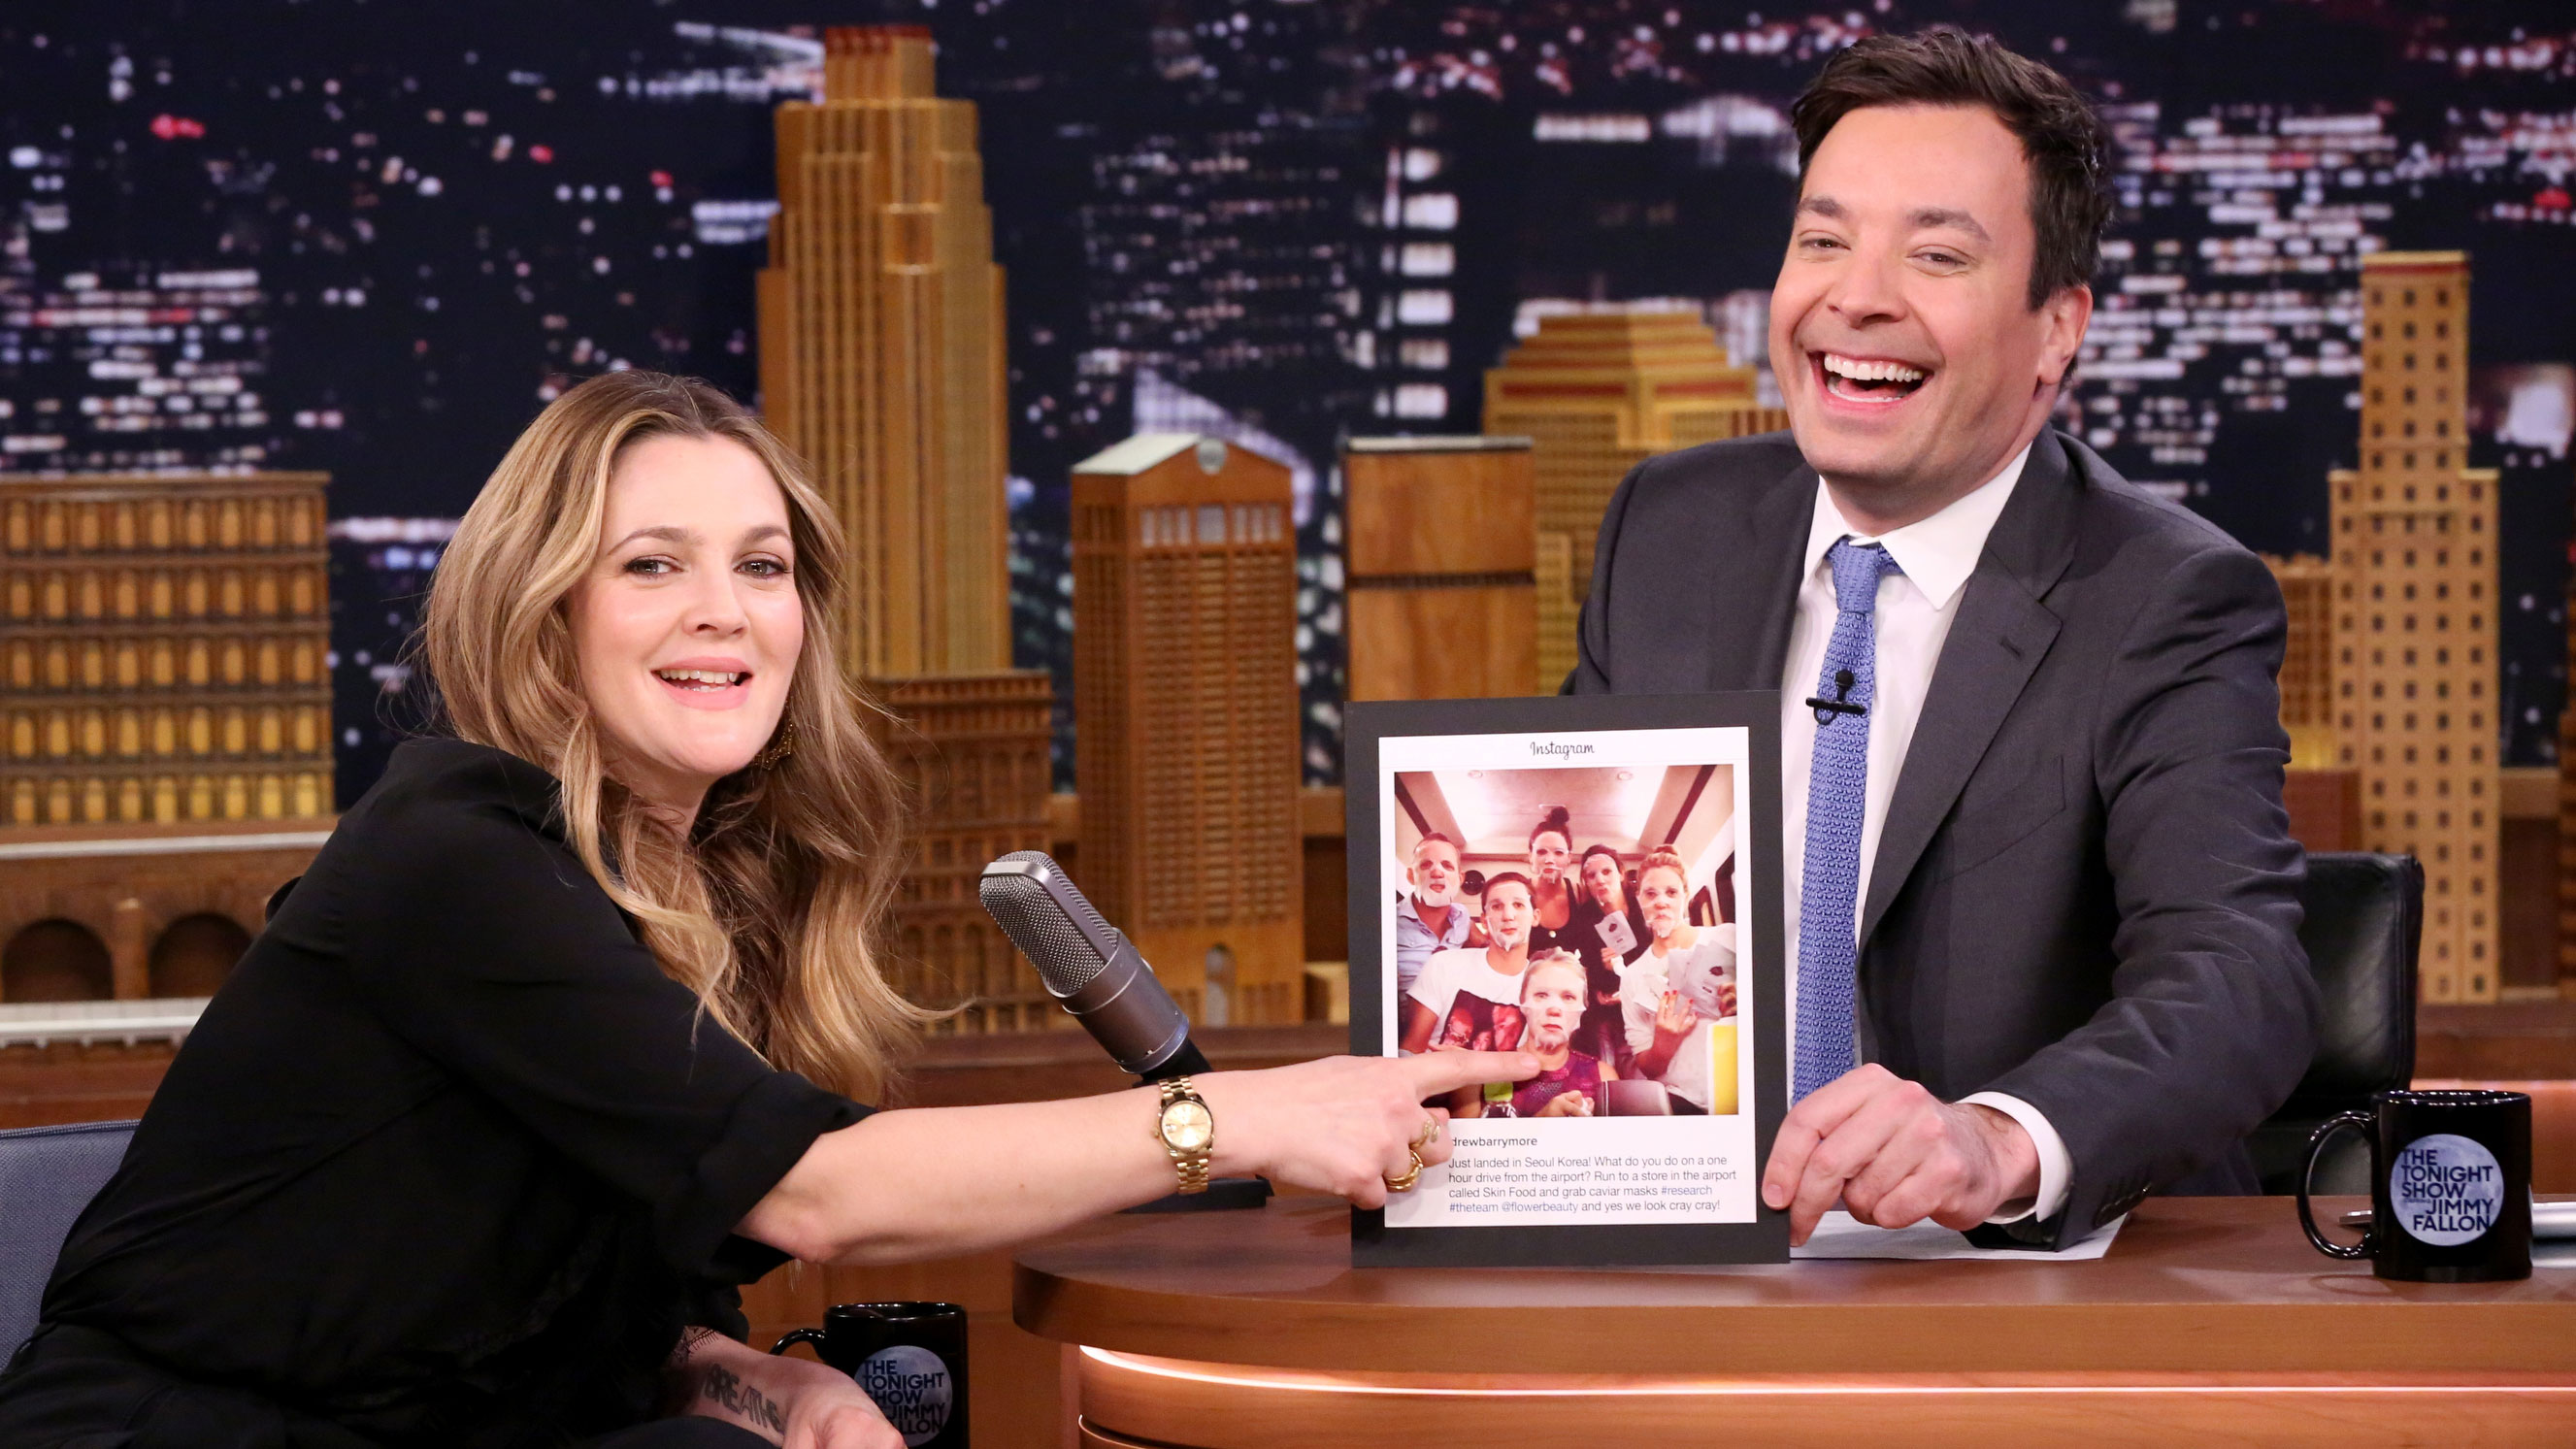 Drew Barrymore's Flower Beauty Dives into Facial Masks ... Drew Barrymore